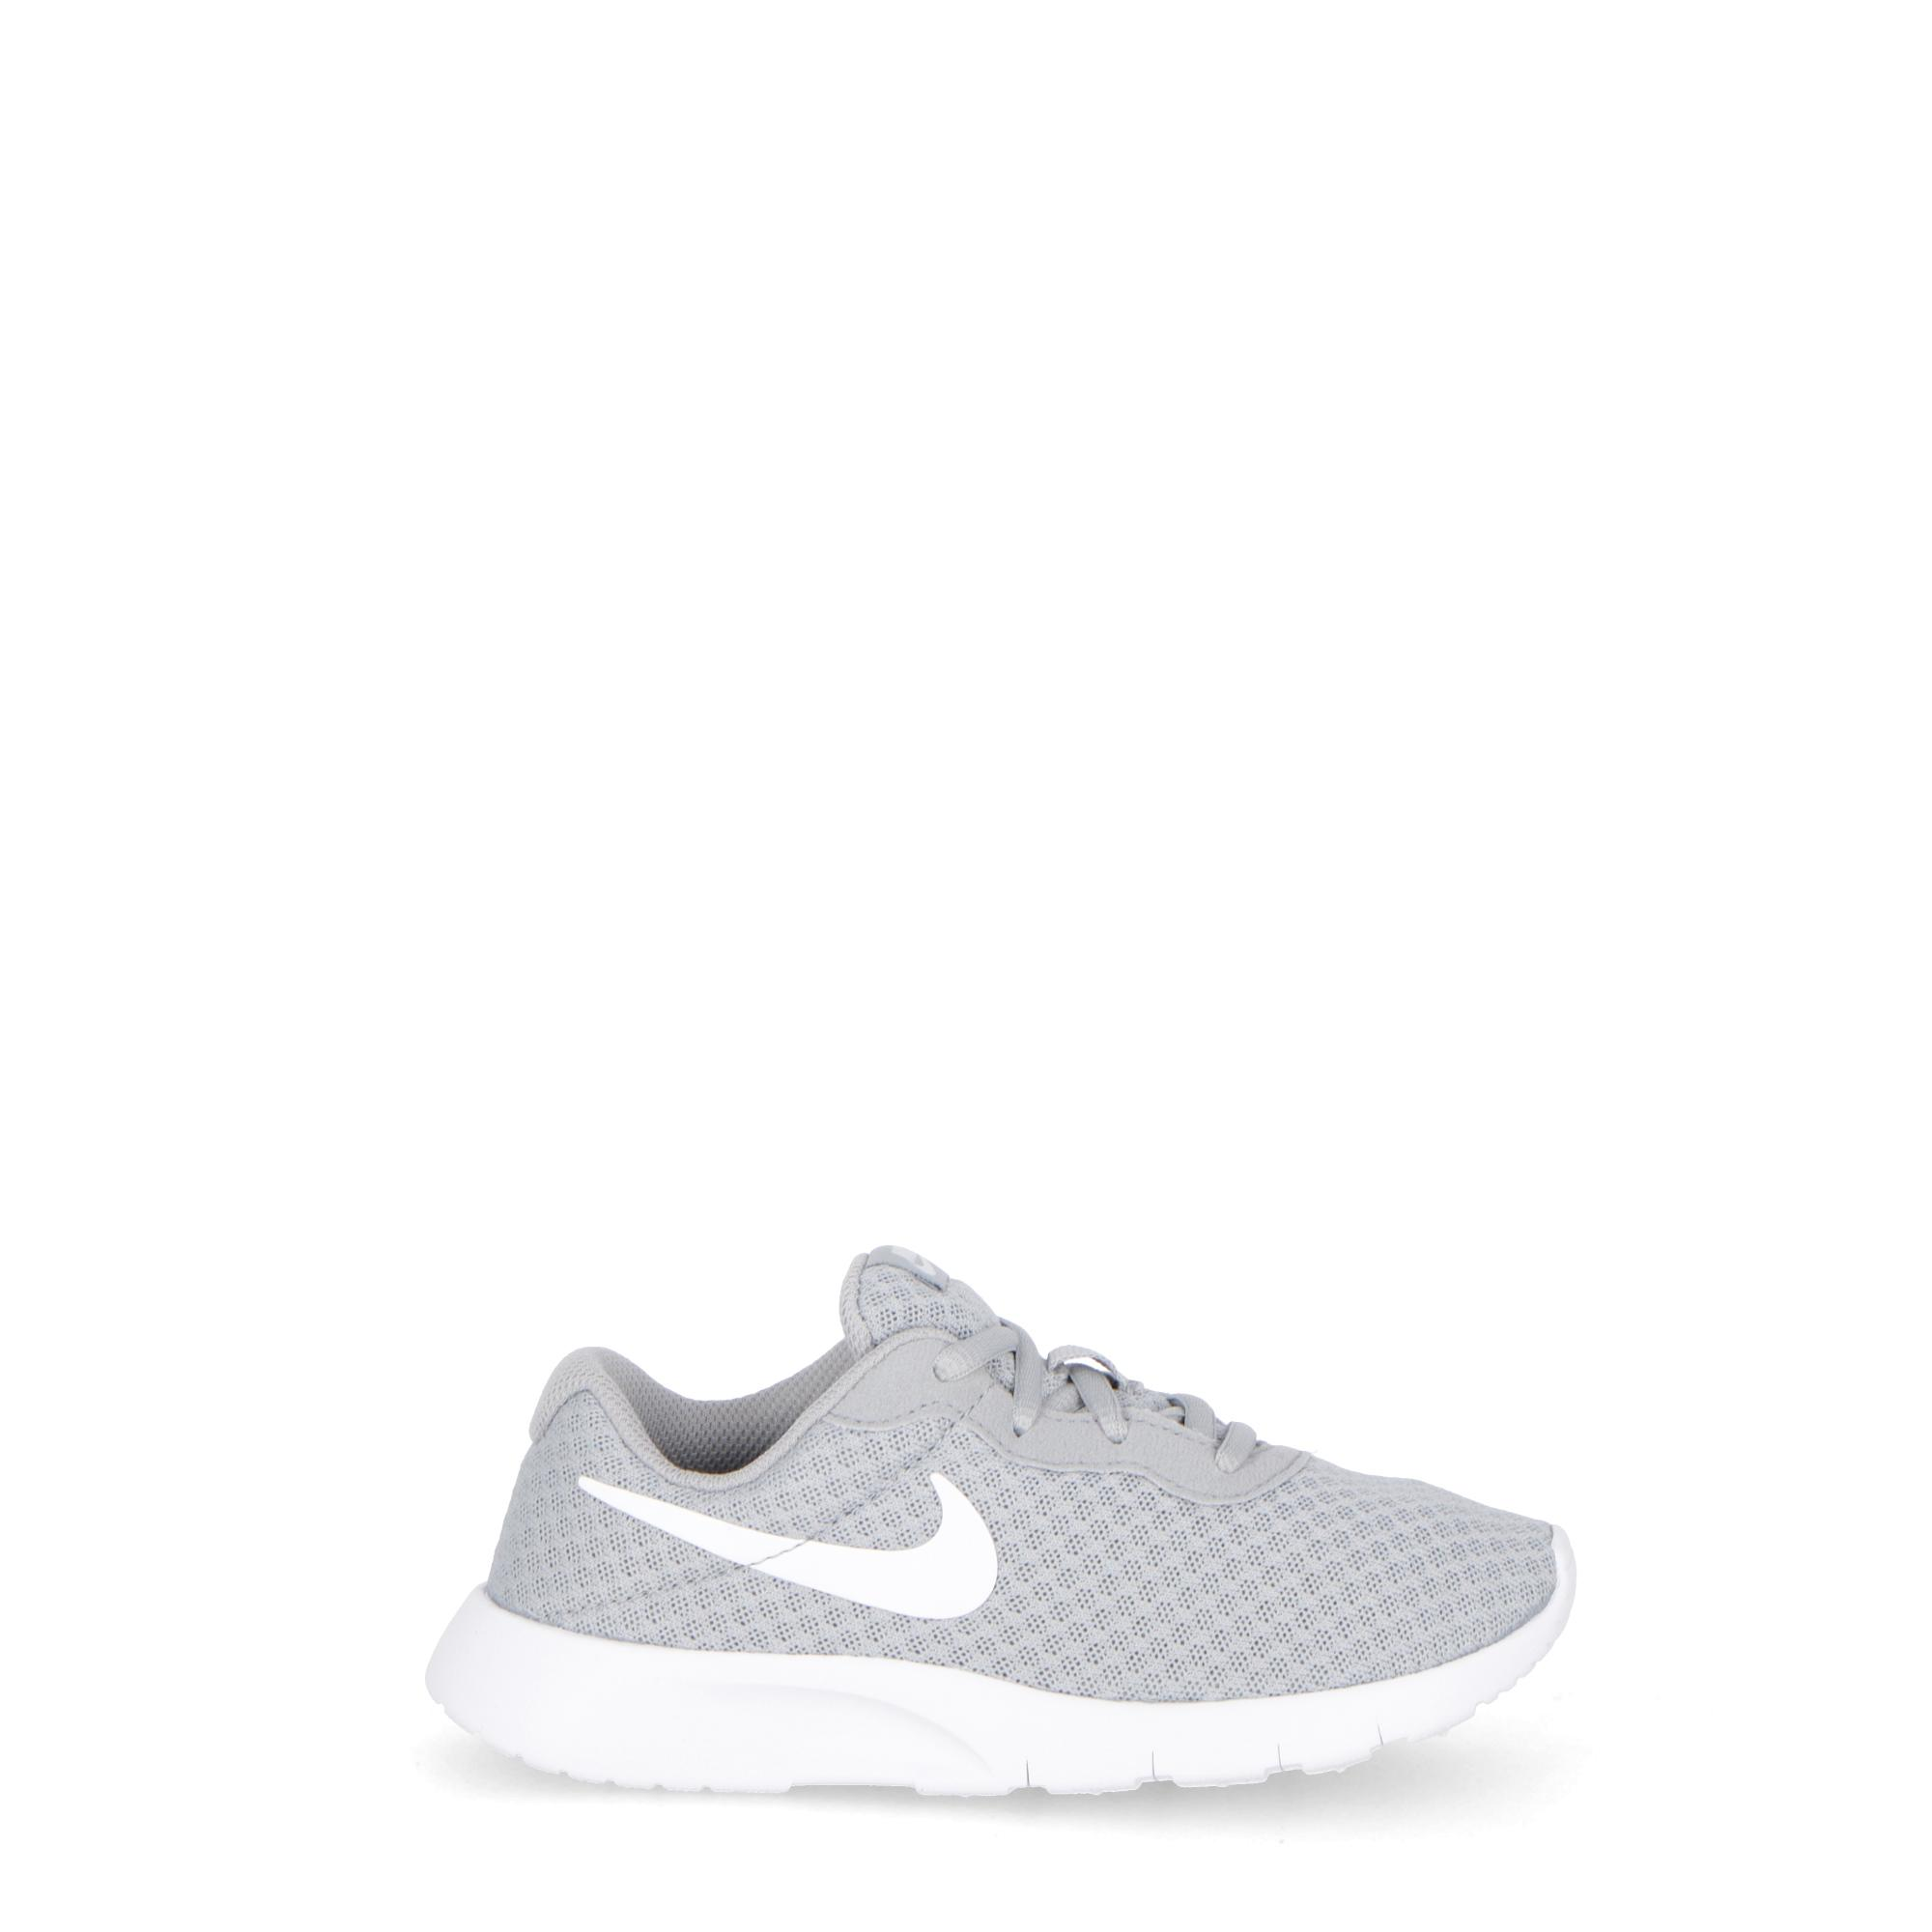 buy online 3ce41 0aaff Nike Tanjun (ps) - Kids Wolf grey WHITE